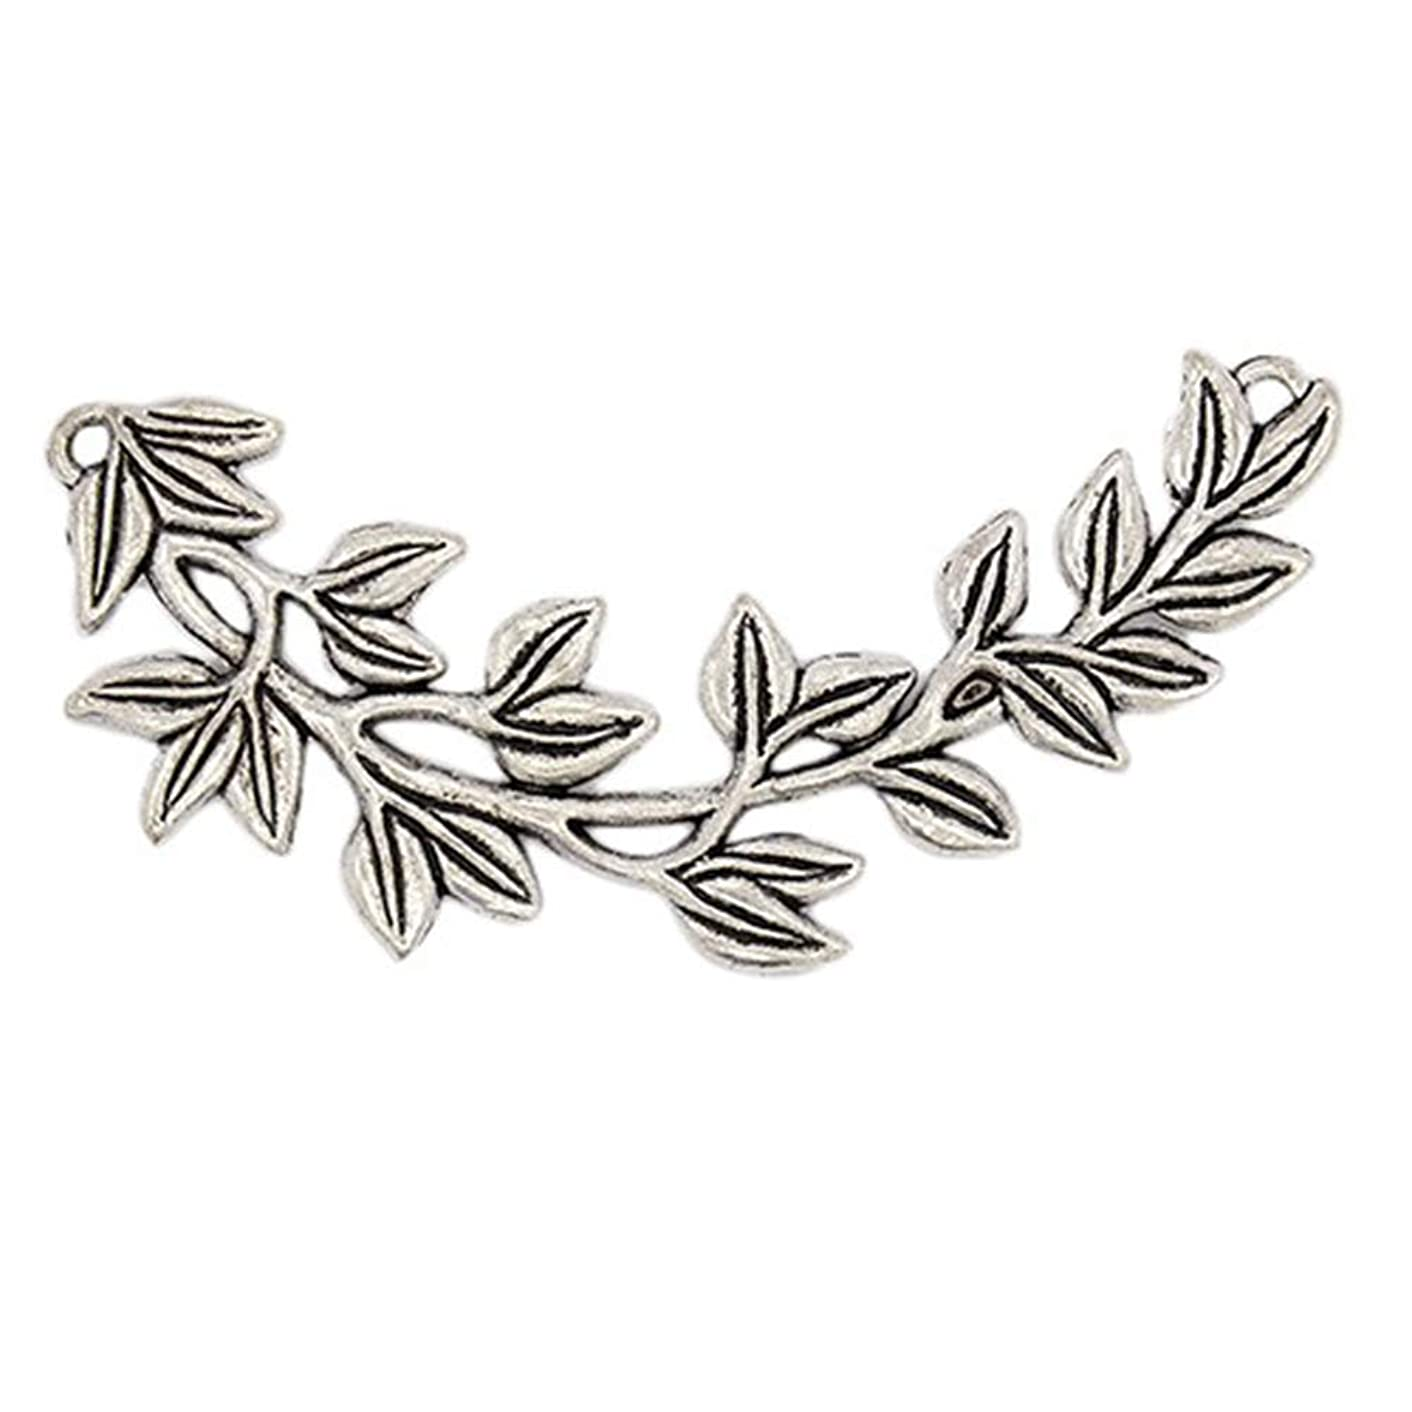 PH PandaHall 5pcs Alloy Olive Branch Links Tibetan Style Links Antique Silver Charm Links for Bracelets Necklaces Jewelry Making